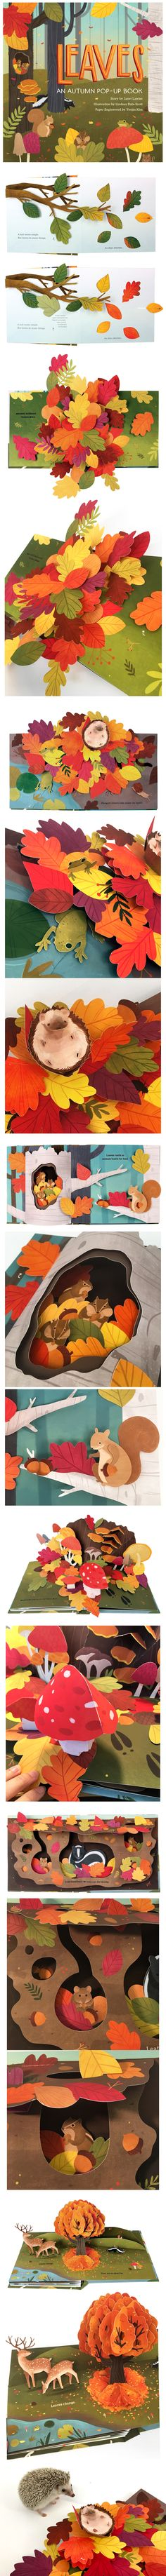 The autumn woodland is a beautiful and busy place! Leaves rustle, critters scurry, and mushrooms pop up from the forest floor. Amazing pop-ups, delightful interactive elements and fascinating facts offer change and surprise on every spread of this celebration of the fall season. Story by Janet Lawler, Illustration by Lindsay Dale-Scott, and Paper Engineering by Yoojin Kim.